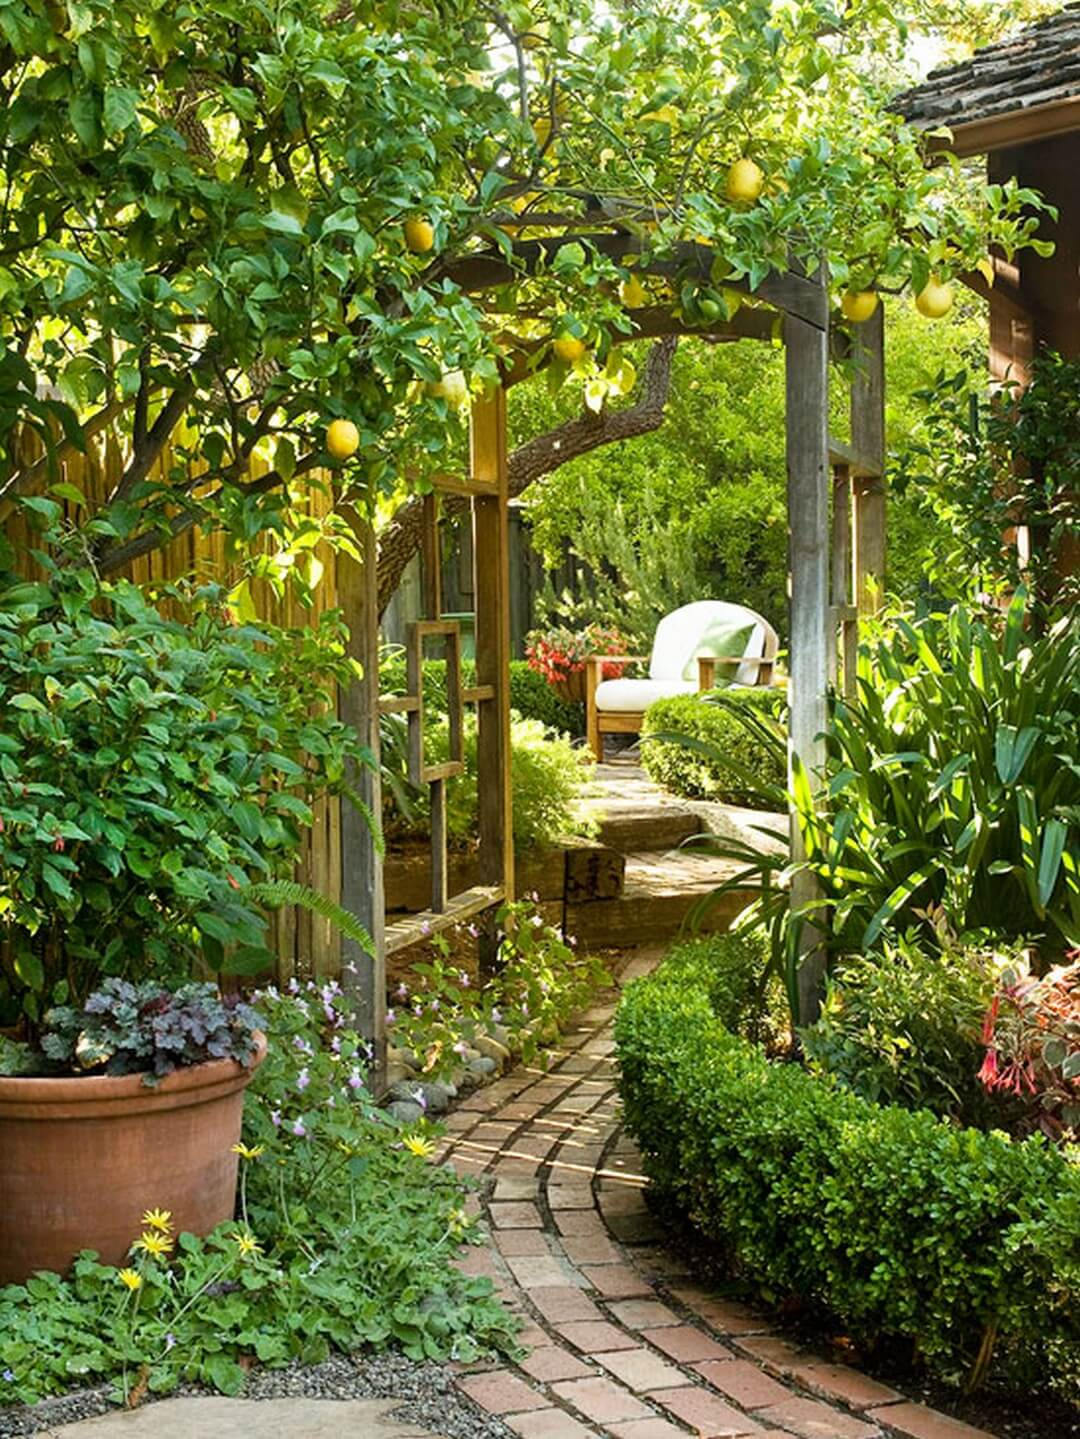 45+ Best Cottage Style Garden Ideas and Designs for 2020 on Bungalow Backyard Ideas id=24468